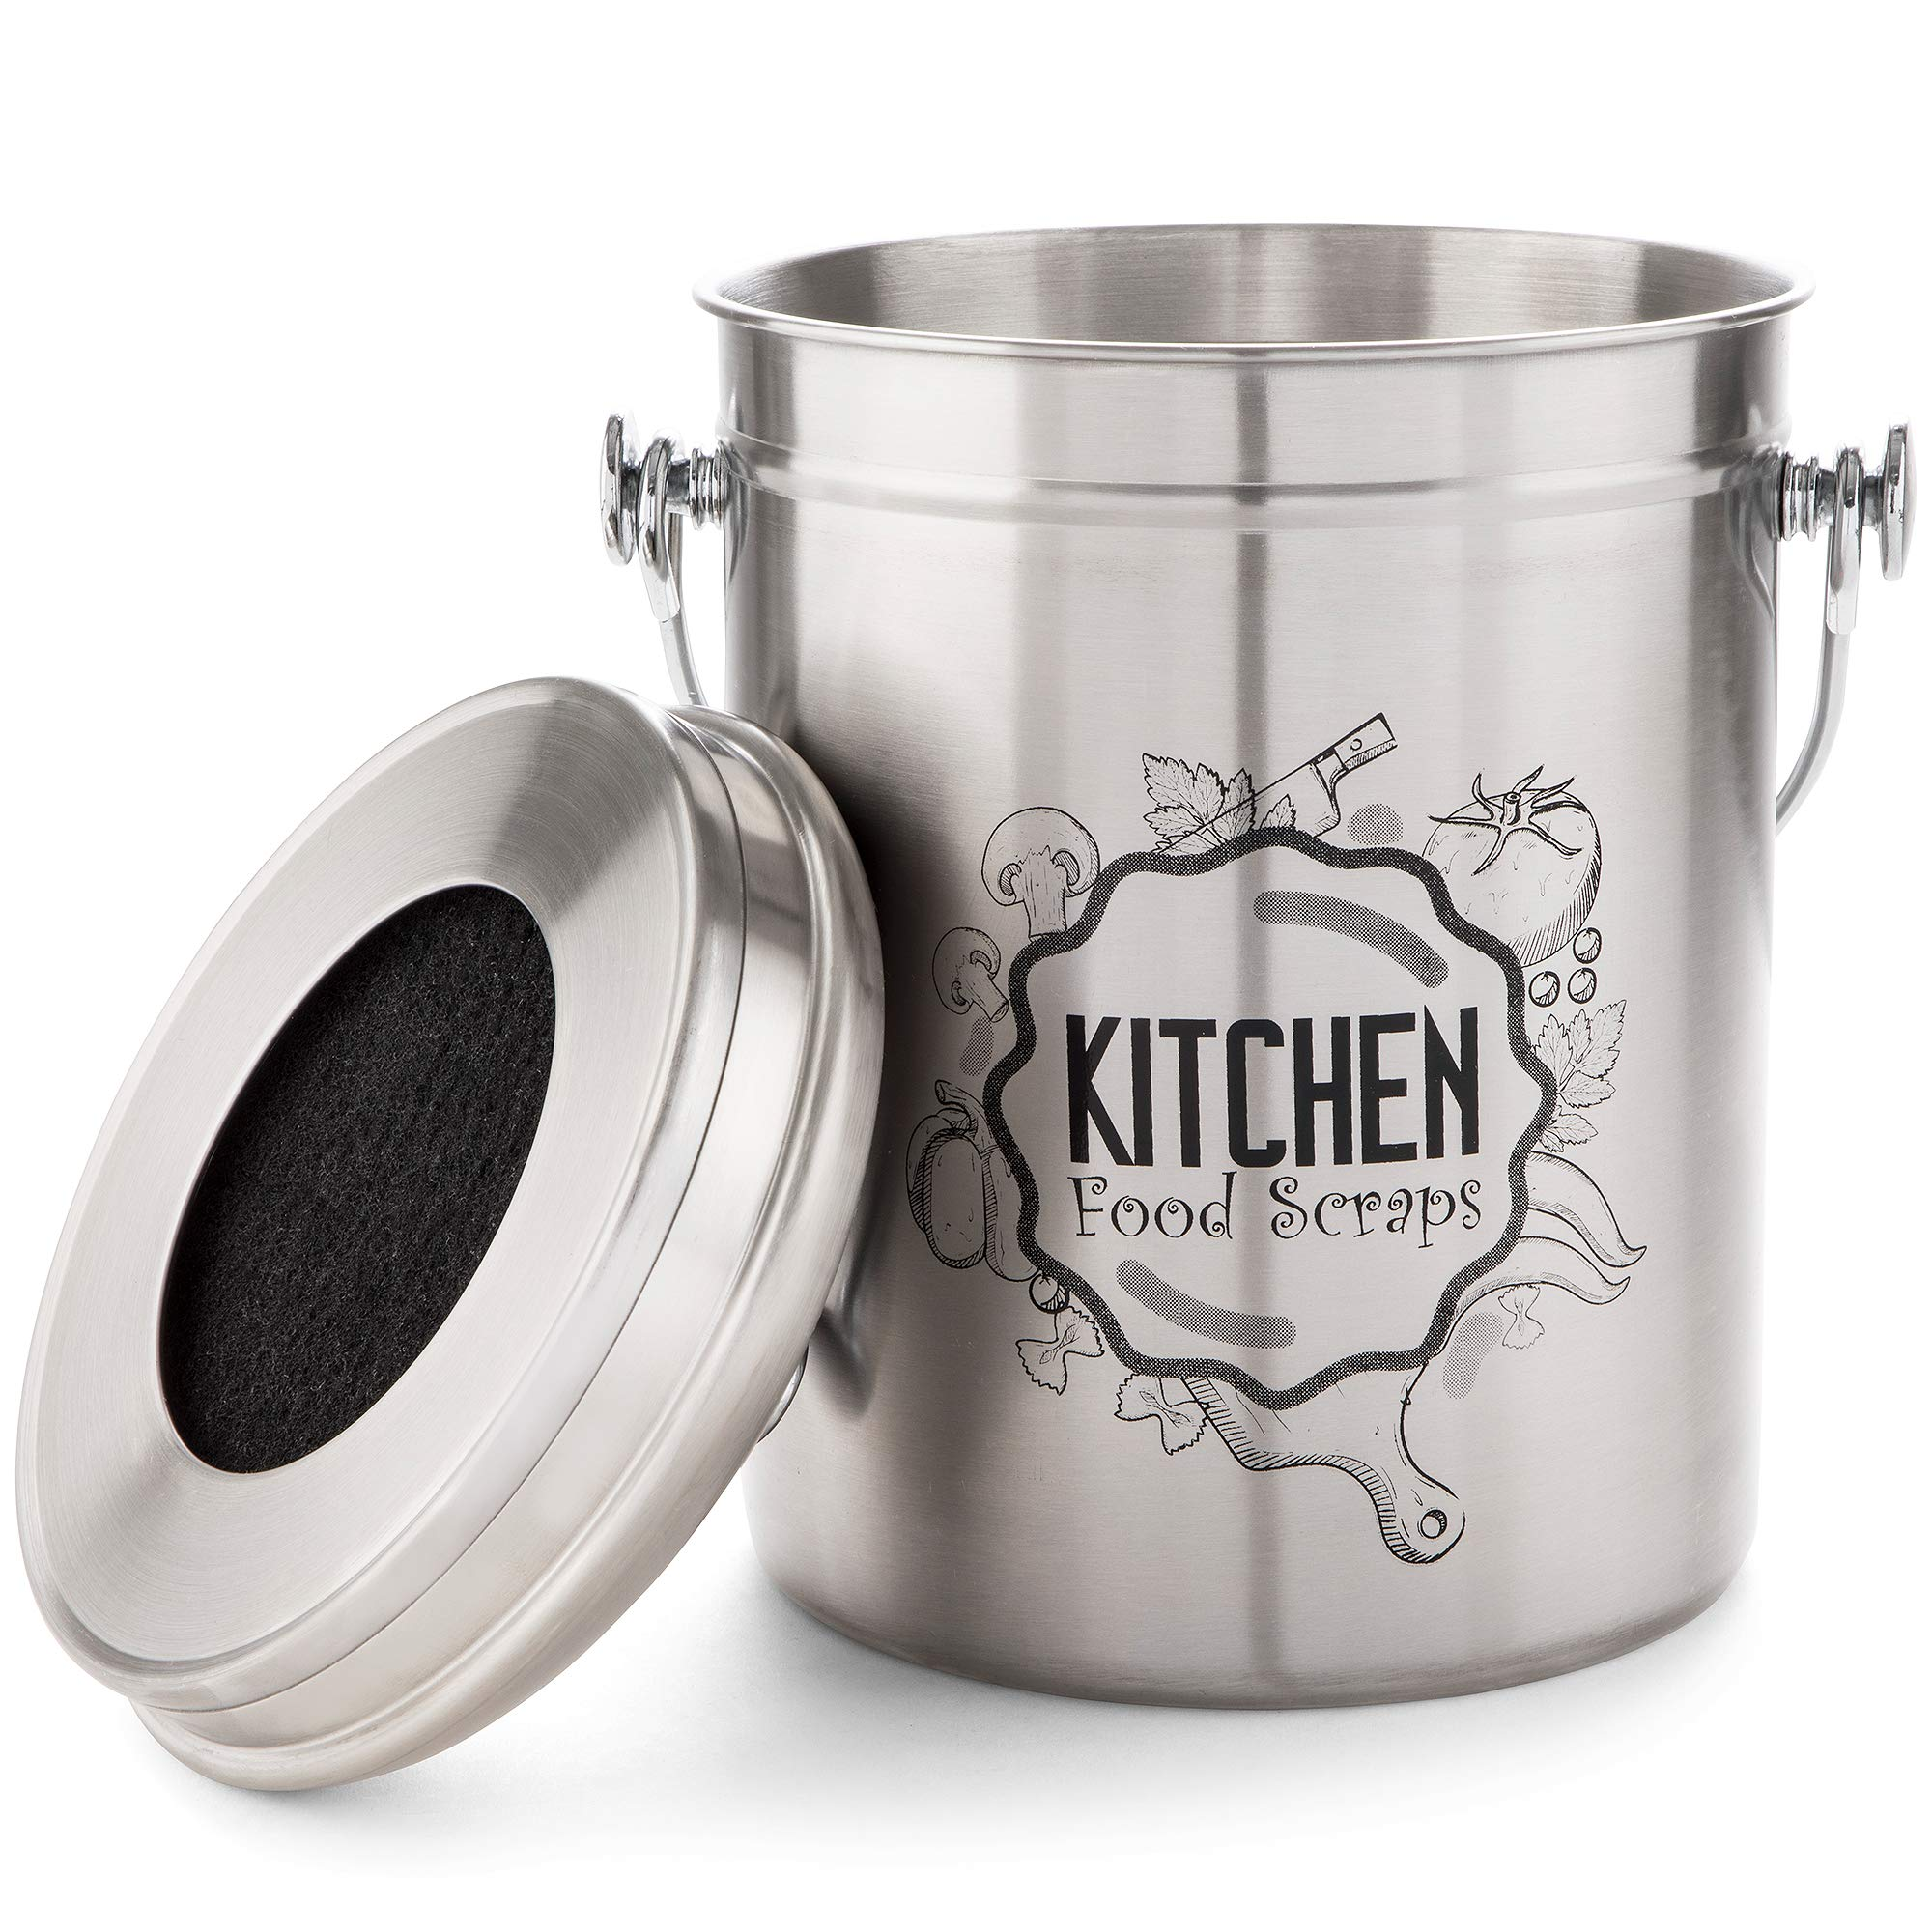 Kitchen Compost Bin Stainless Steel (Food Grade 410) Odorless Countertop Compost Pail -Bonus Charcoal Filters & Gardening Gloves. Insect-proof 1.3 Gallon bucket. Gift Boxed, and Gift Wrap available by Green Hills Health (Image #7)